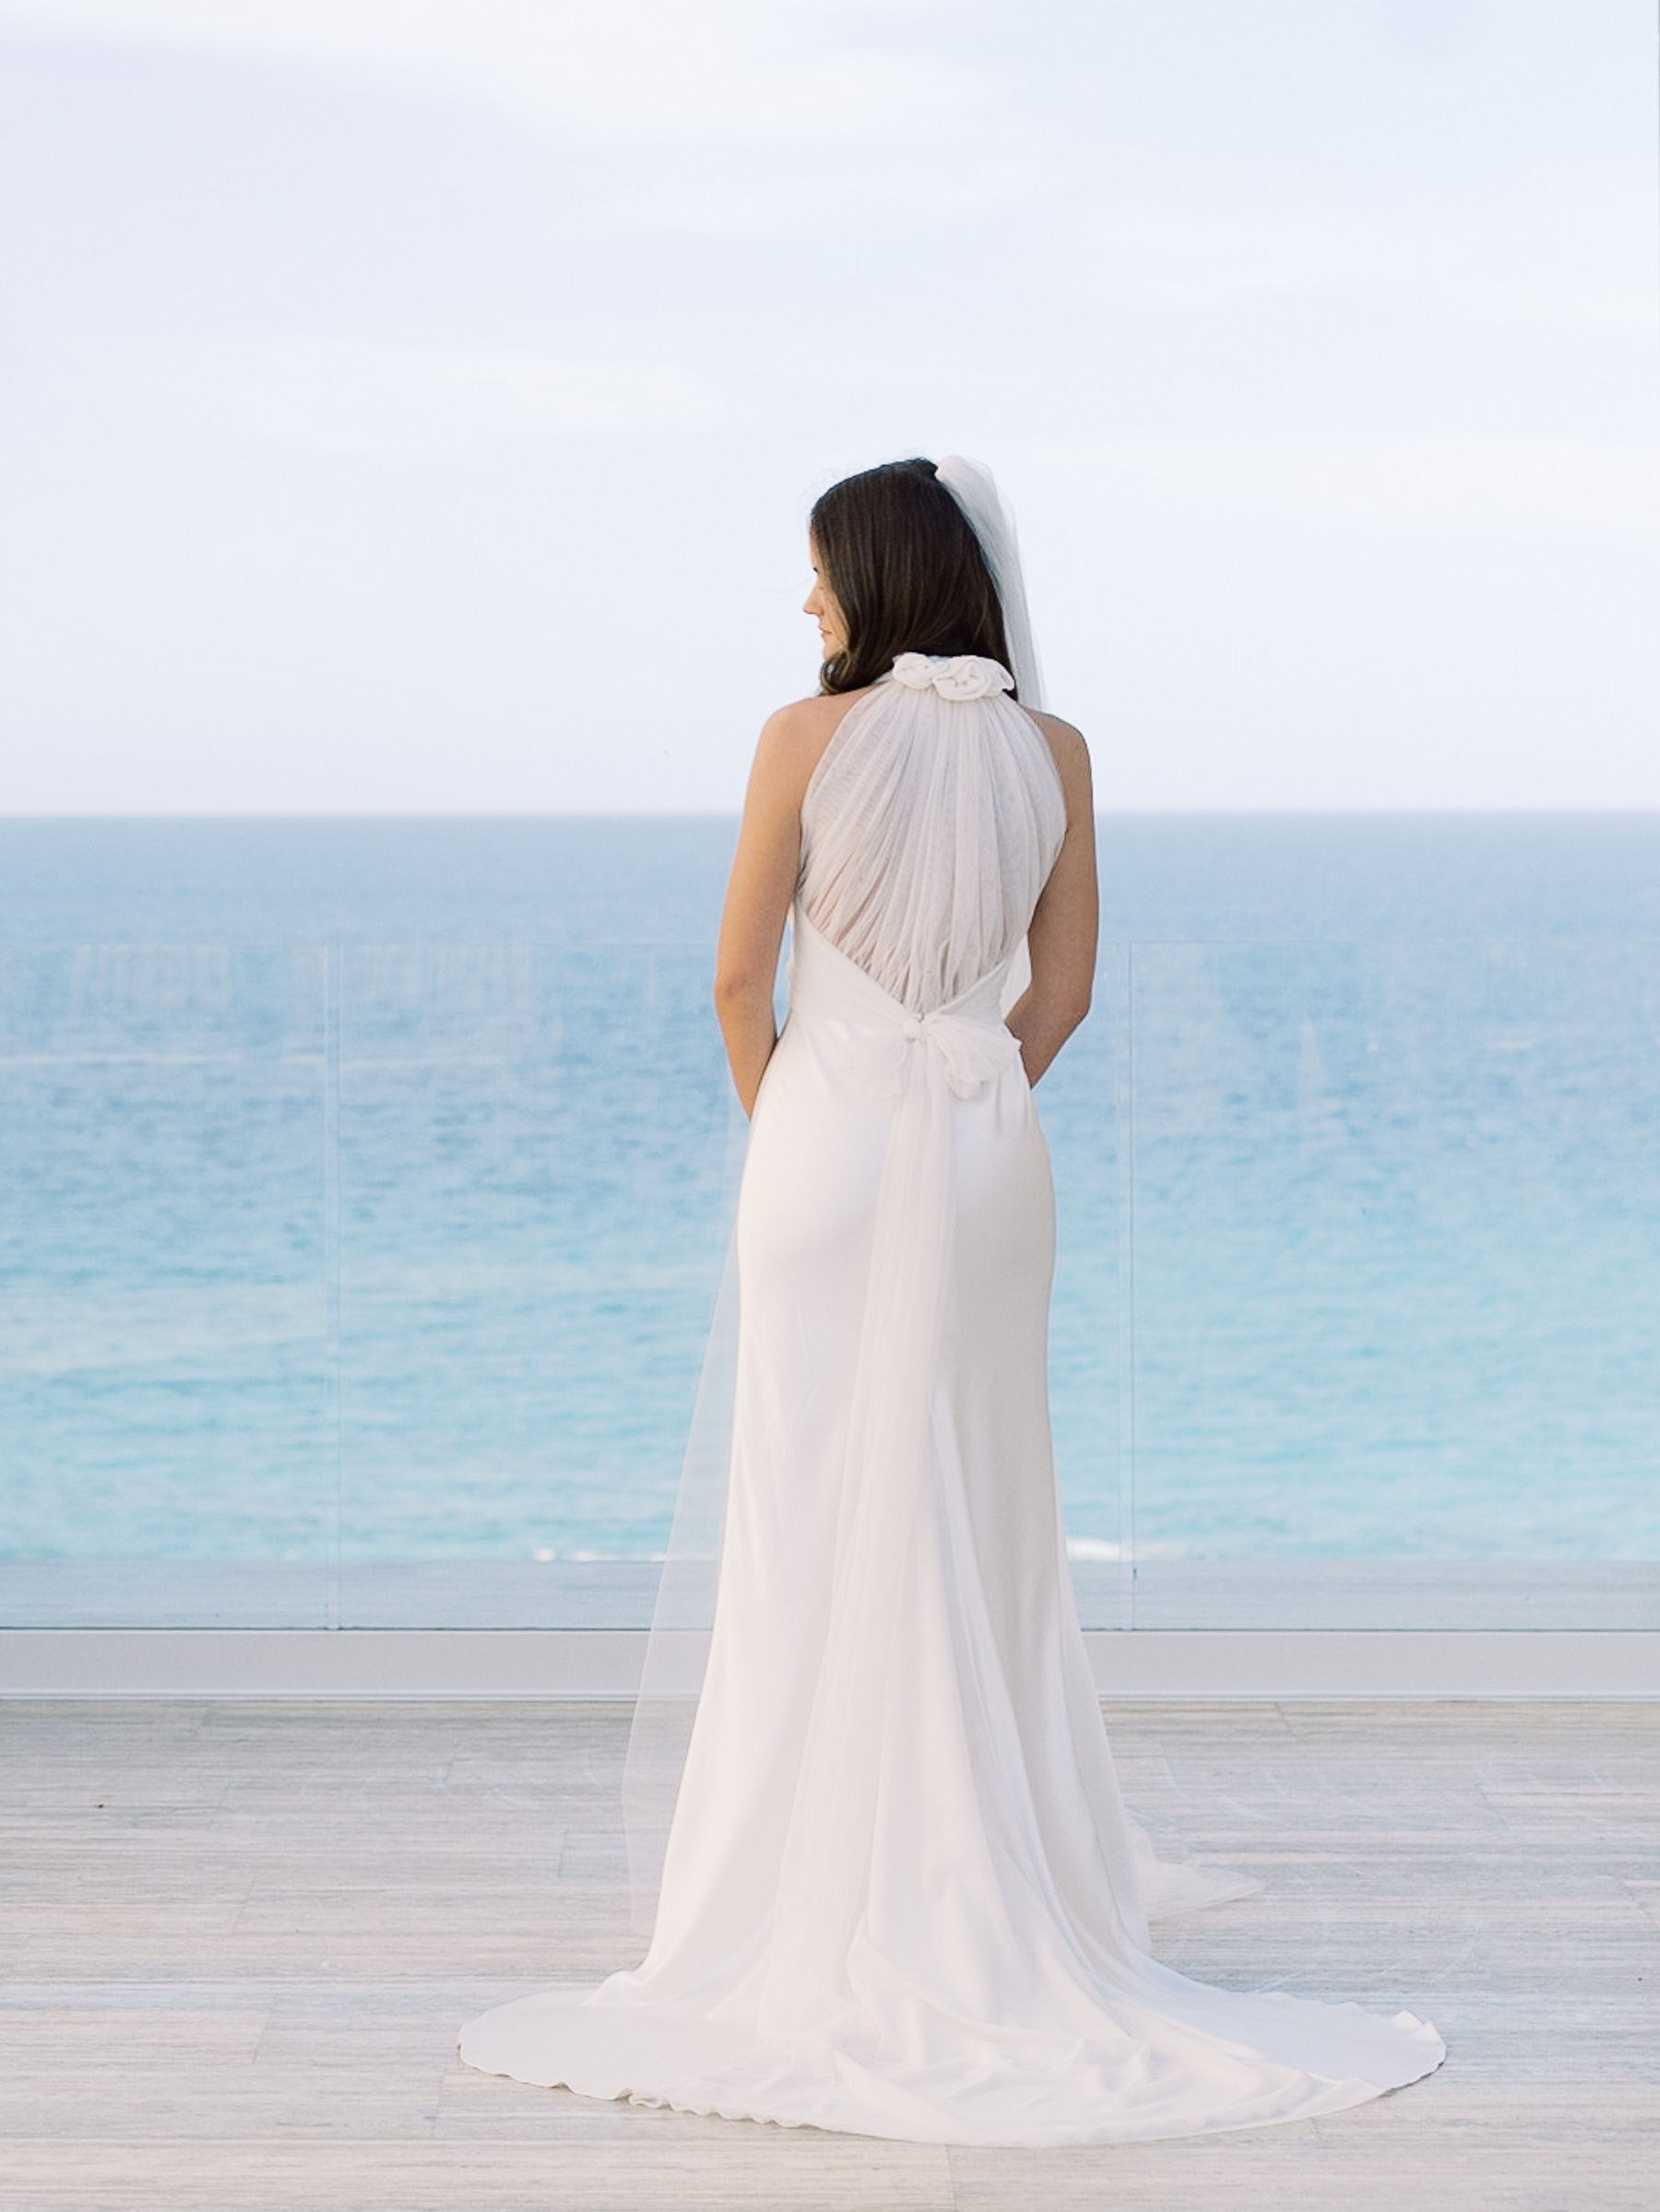 bridal gown from the back solaz wedding